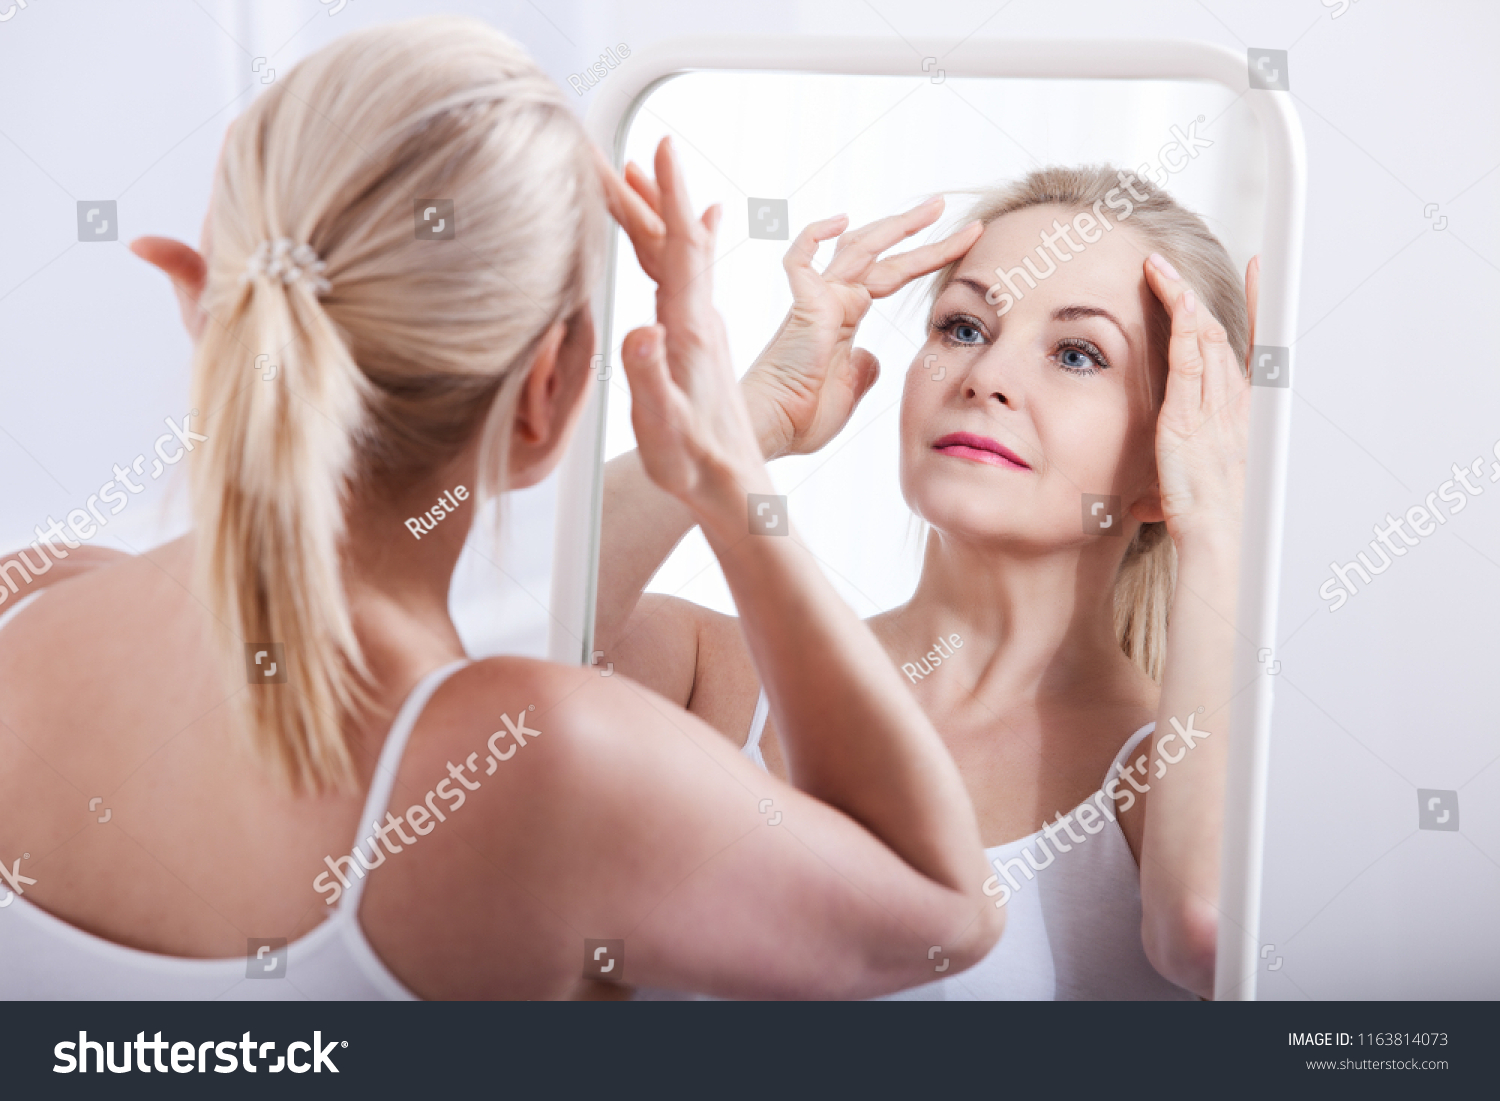 Erotic pictures of women looking in mirrors variant does